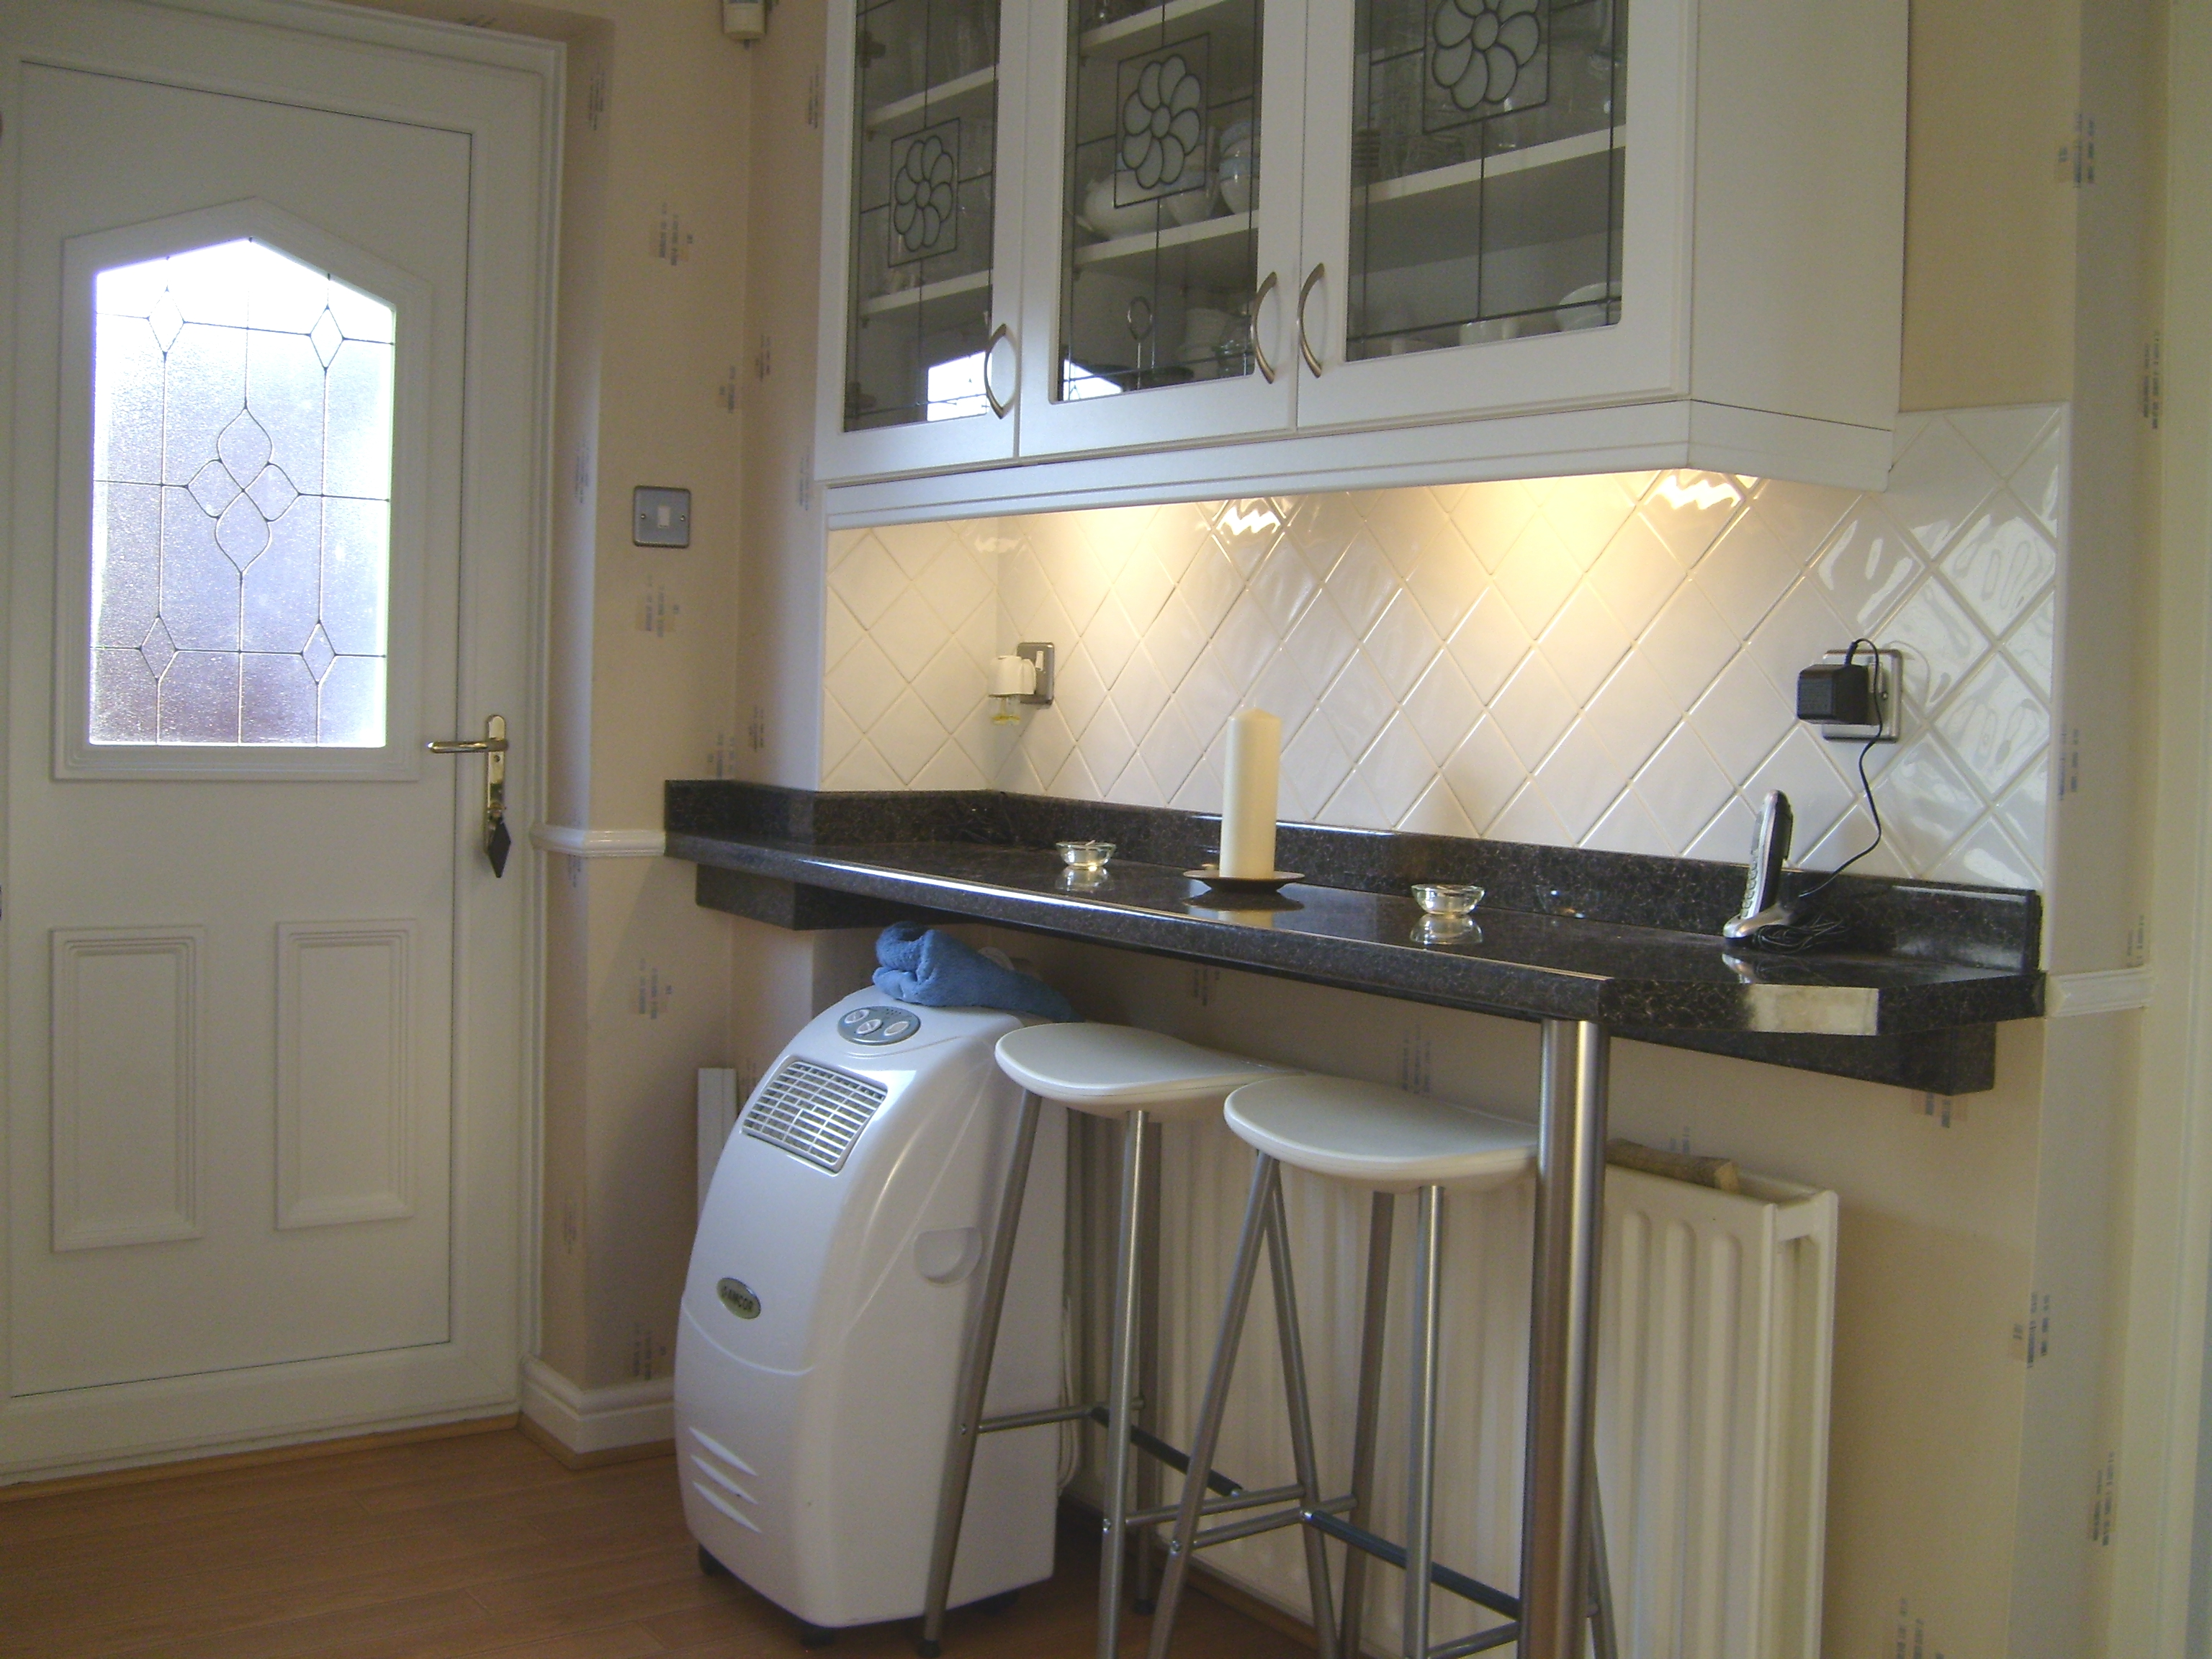 Breakfast bar & rear door